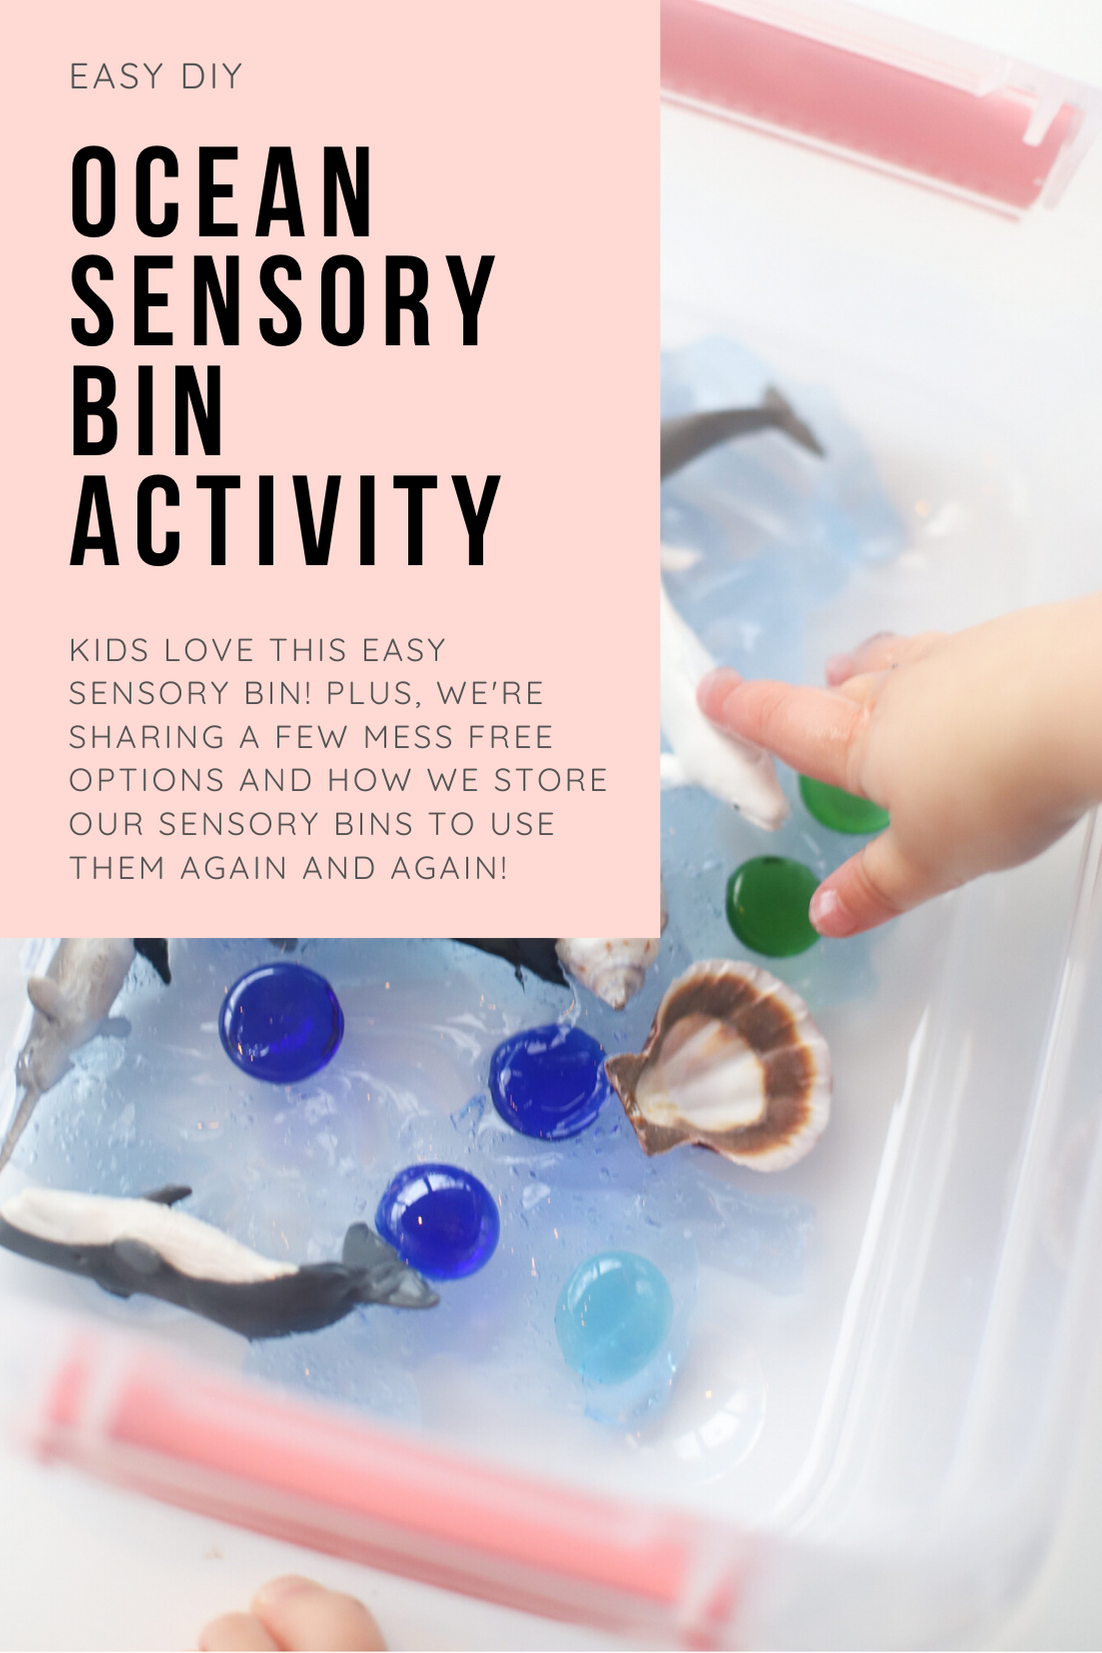 Make your kids an Easy and Fun Kids Ocean Sensory Bin Activity with inexpensive items and watch their imaginations run wild! Plus, a no mess option, and how to store and re-use the DIY ocean sensory bin again and again. This craft is a perfect learning activity for toddlers, preschools, kindergarteners, and beyond! | glitterinc.com | @glitterinc